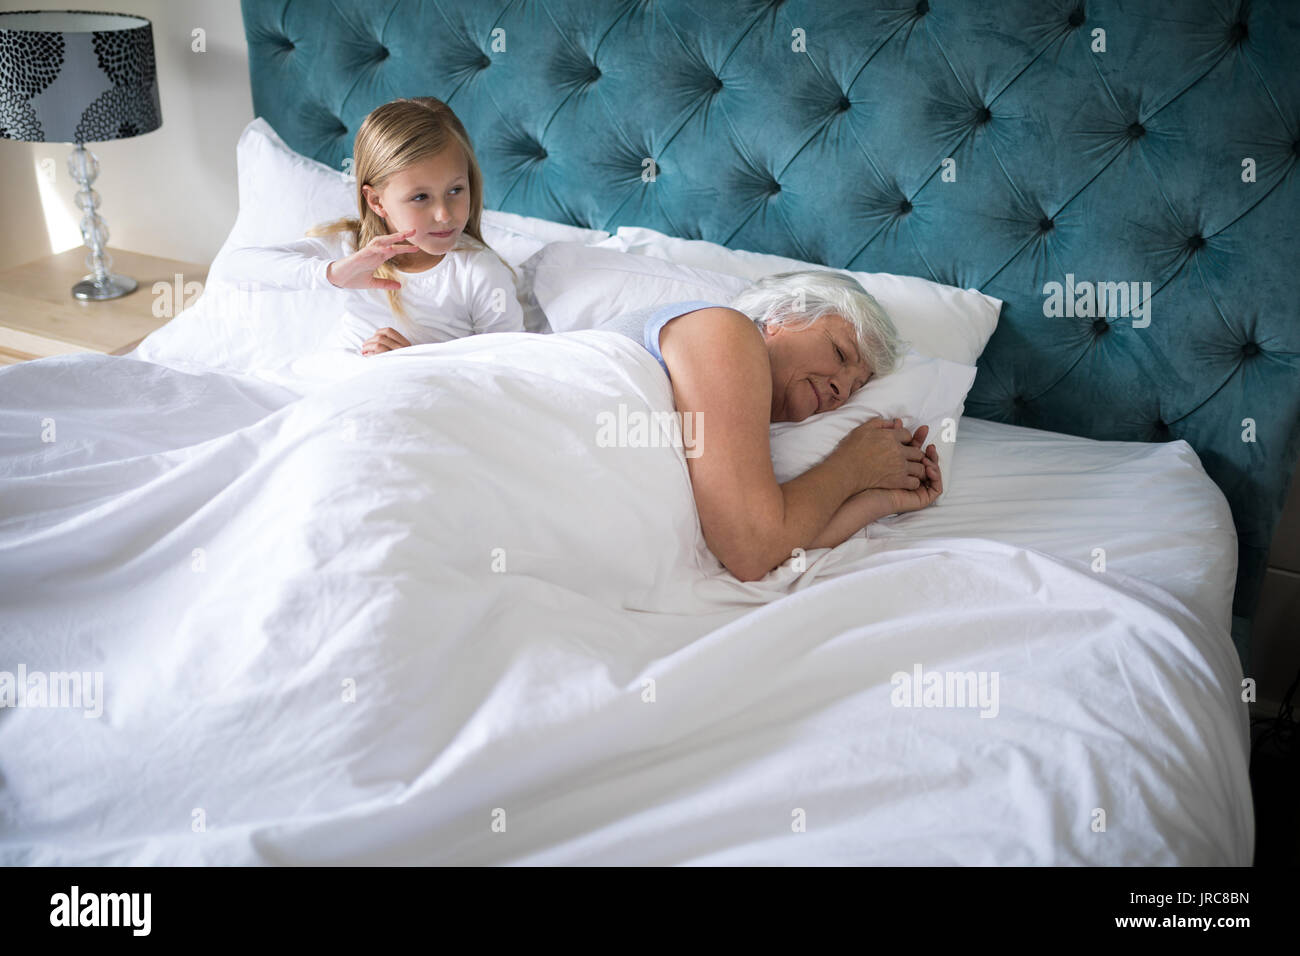 Granny In Bed Stock Photos Granny In Bed Stock Images